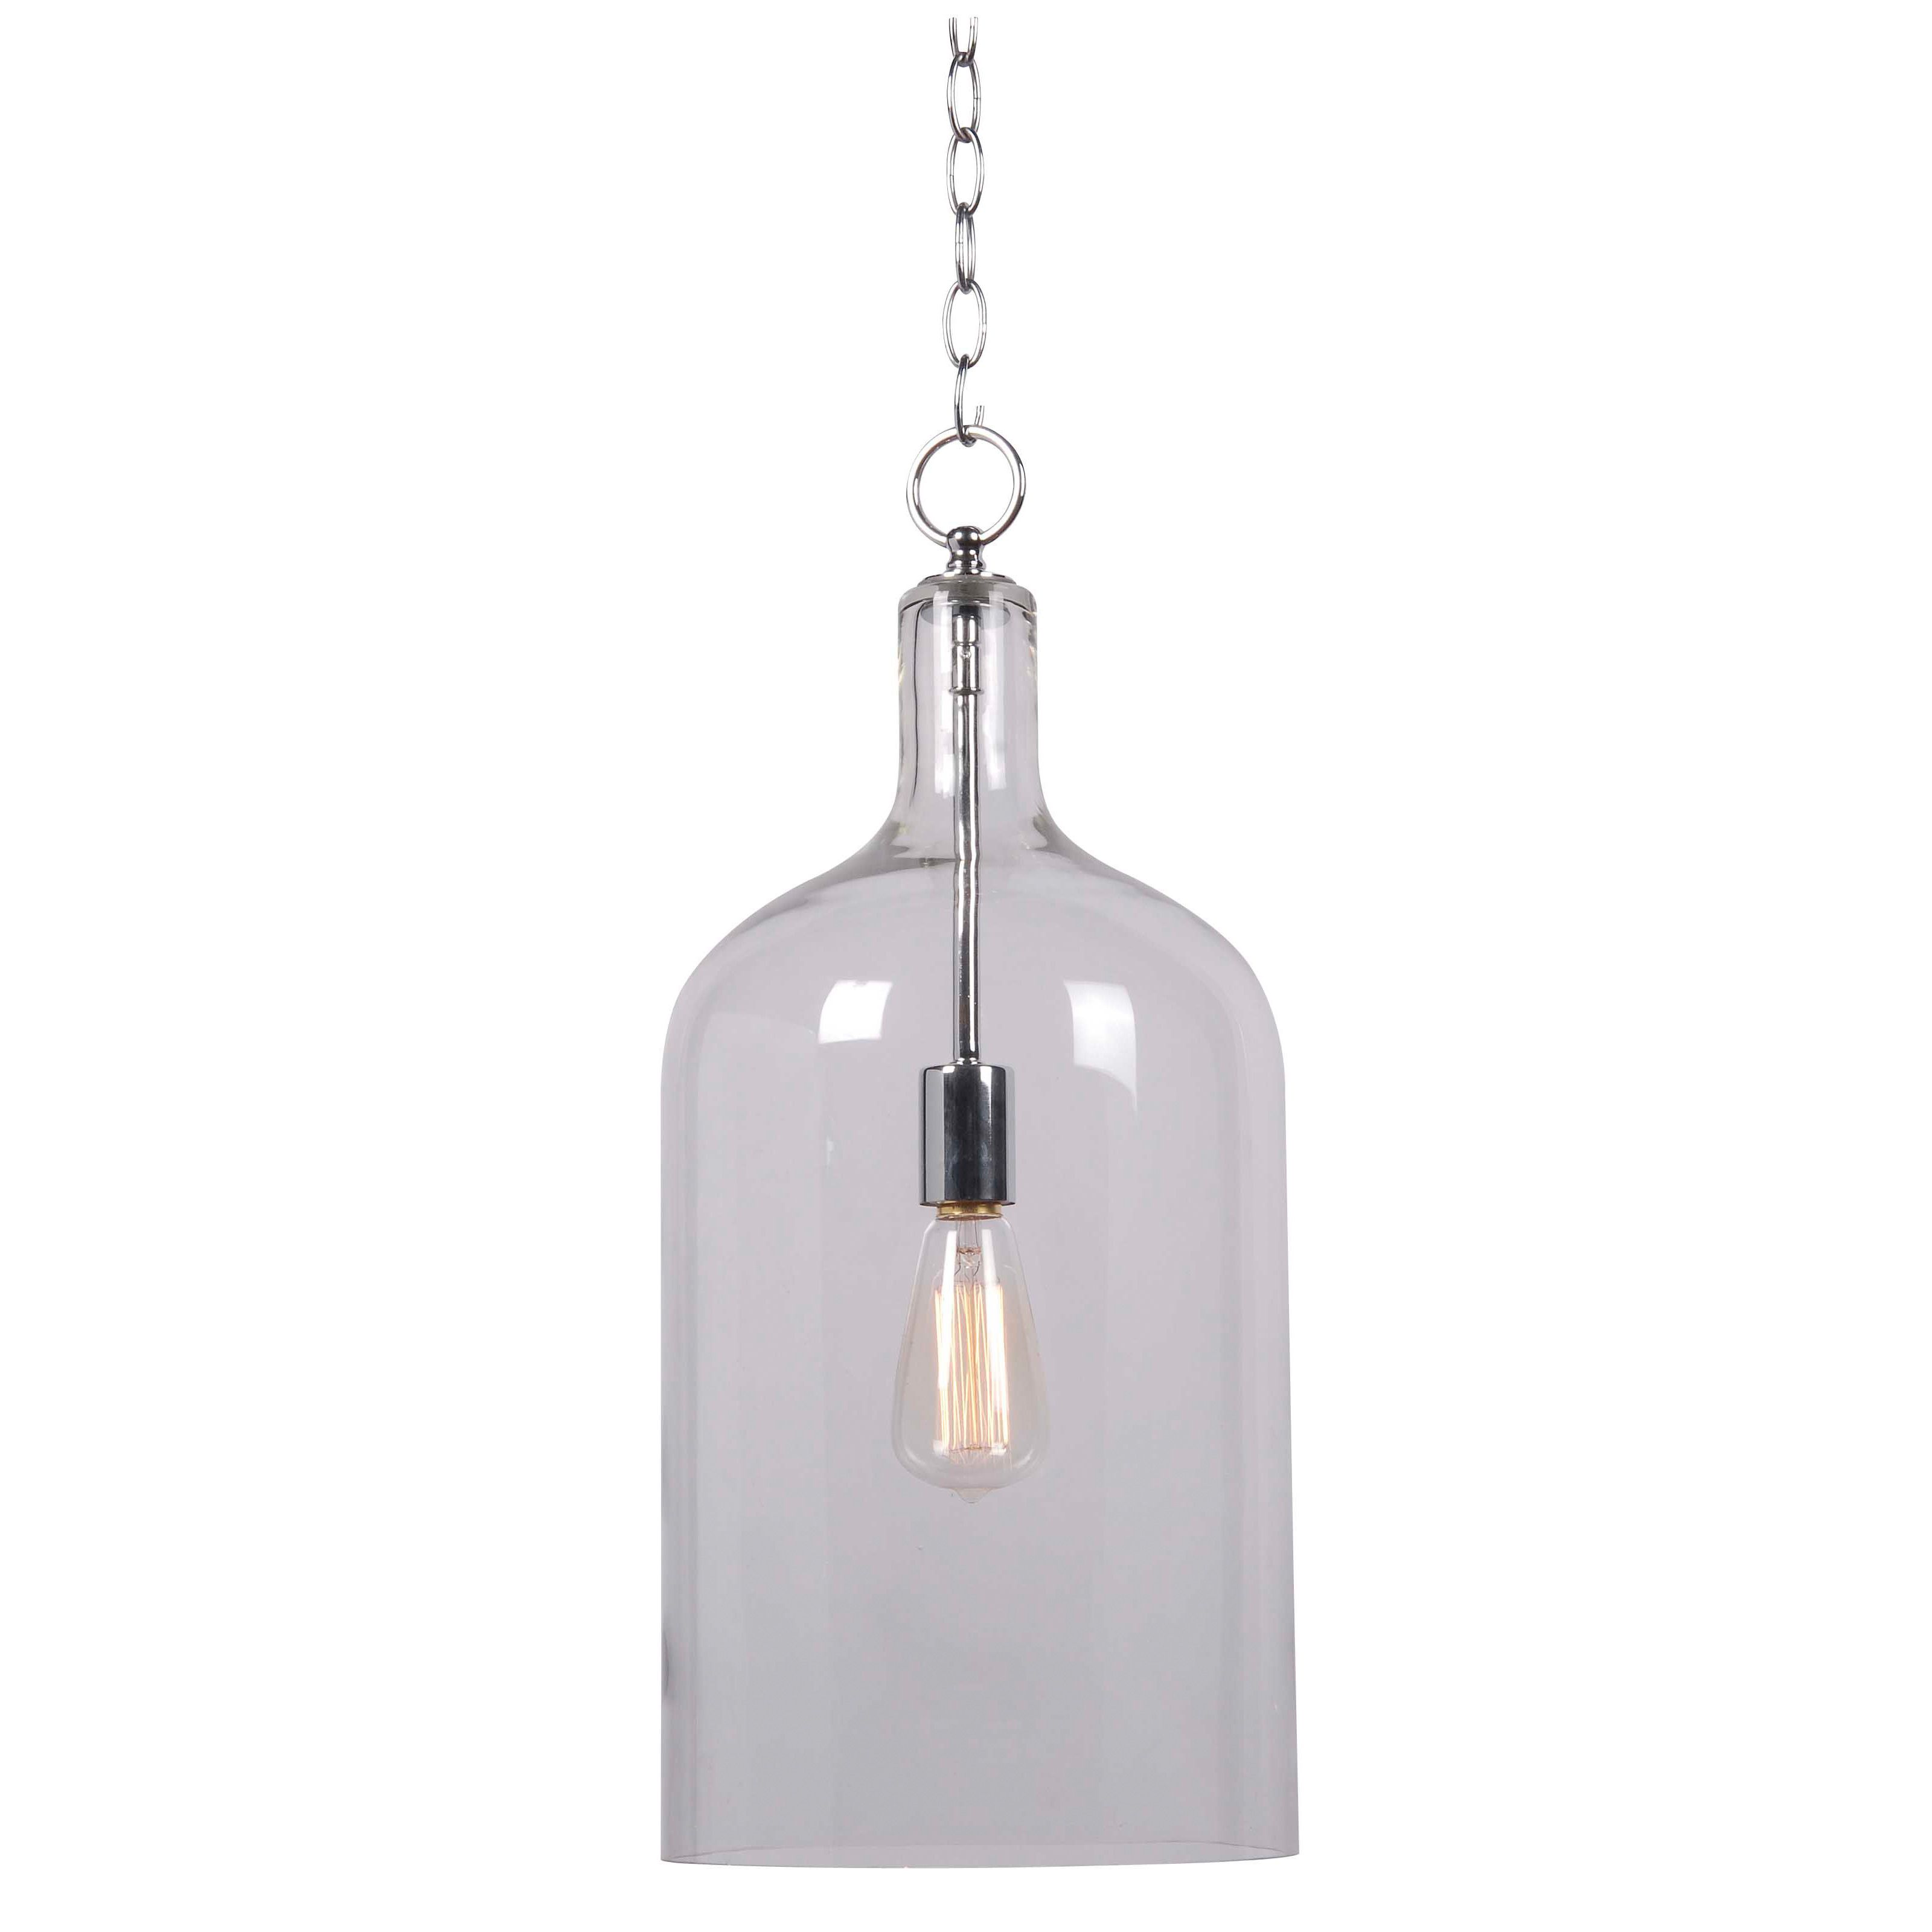 Hang this delicate minimalist onelight pendant over a bar or small